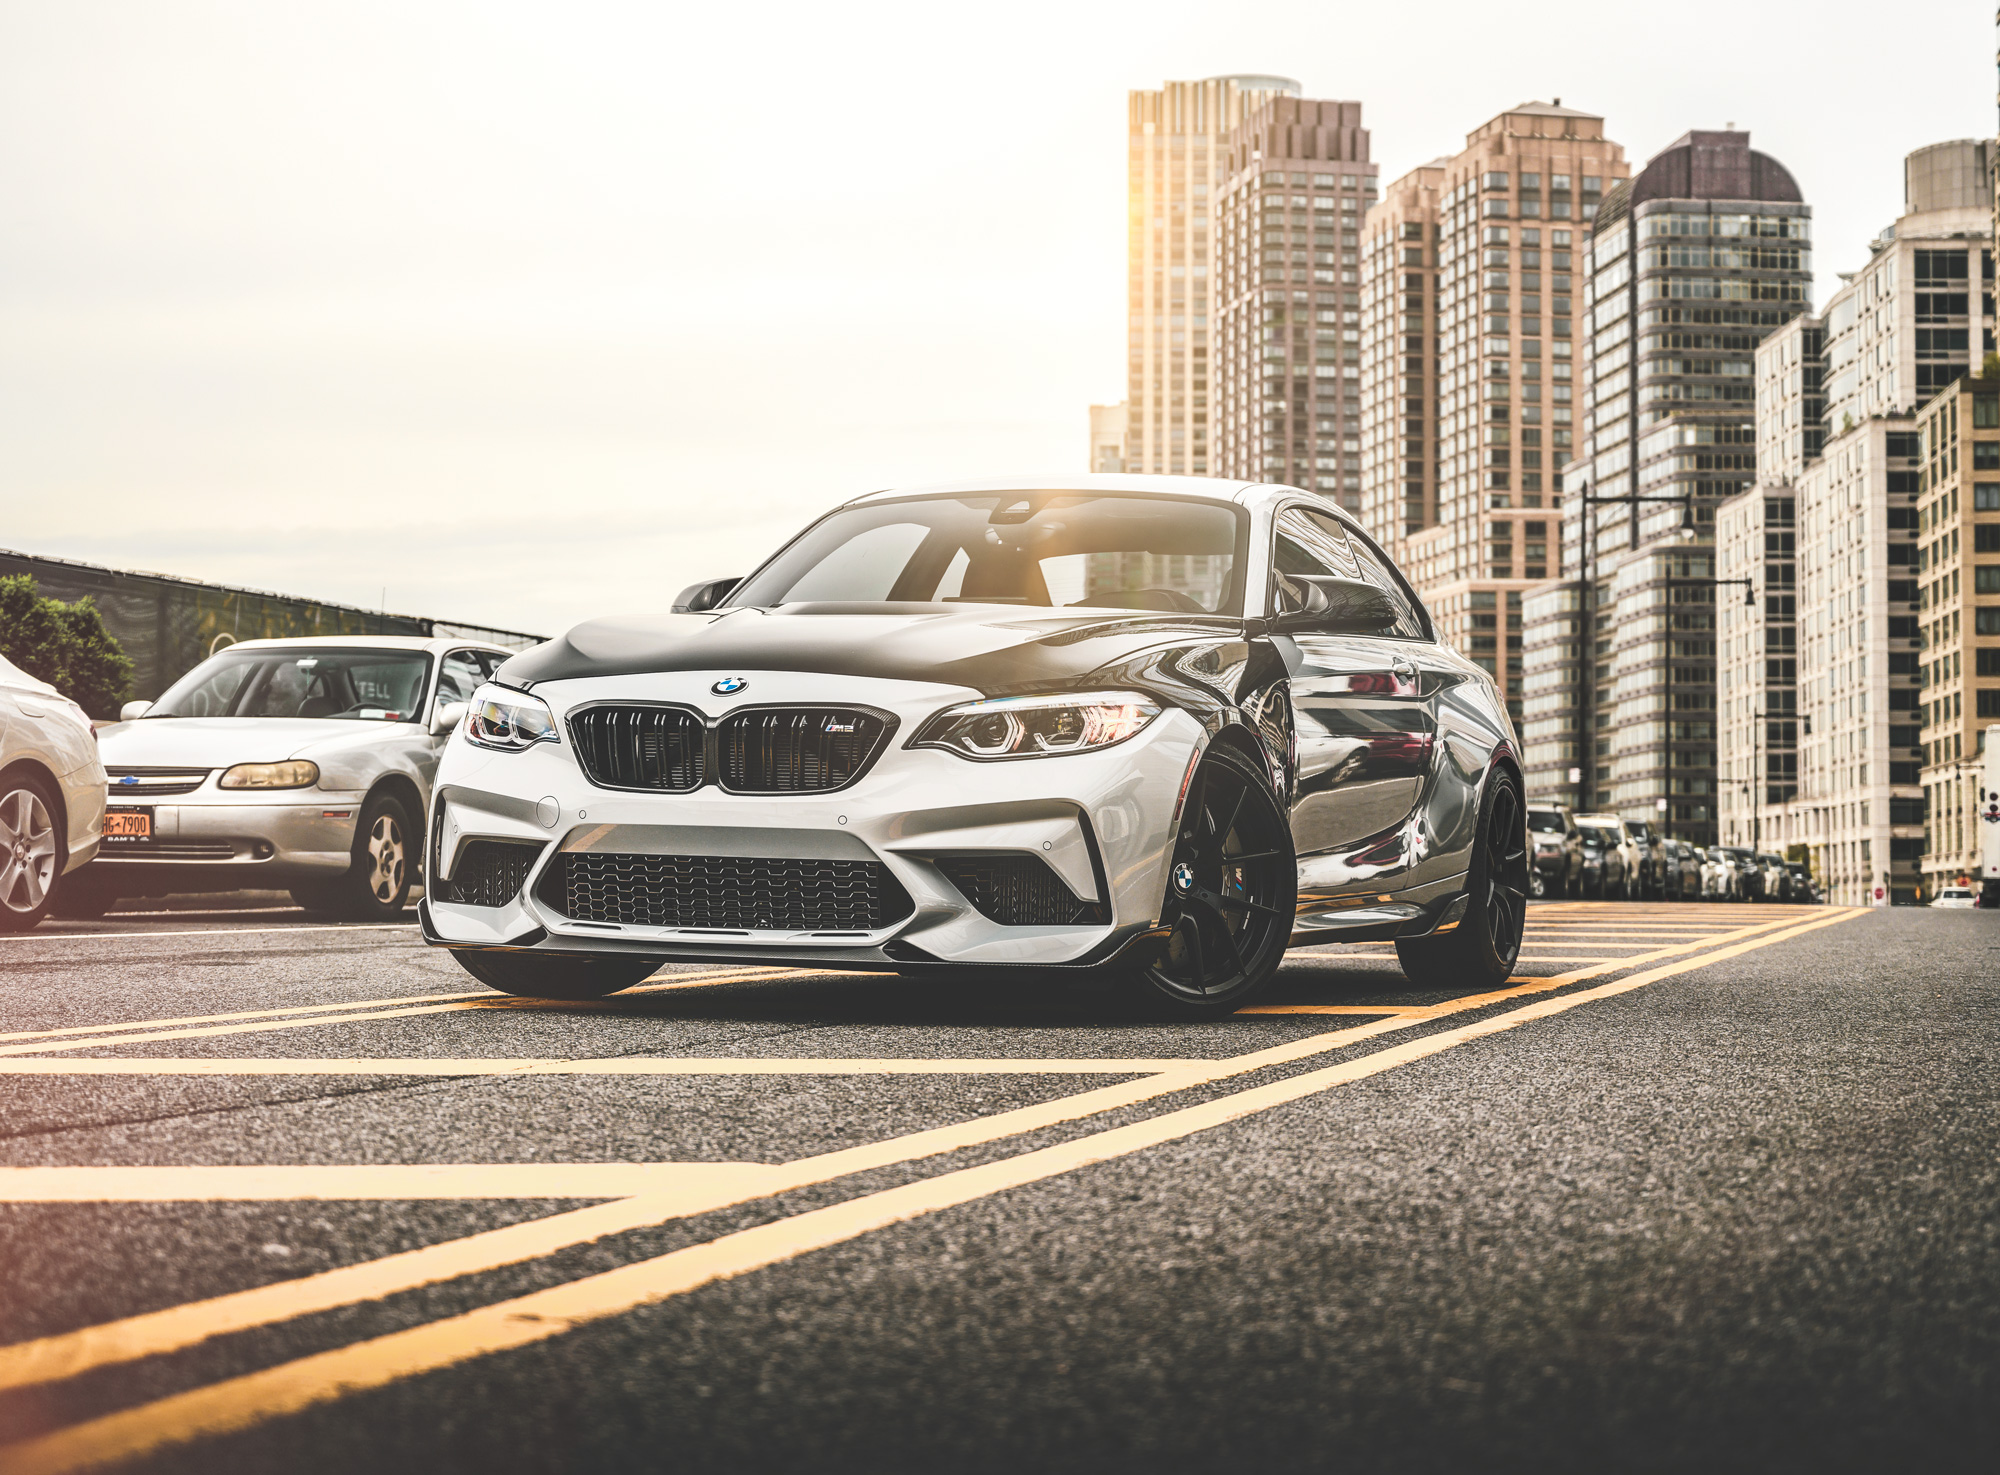 Behind the scenes on the BMW M2 photoshoot